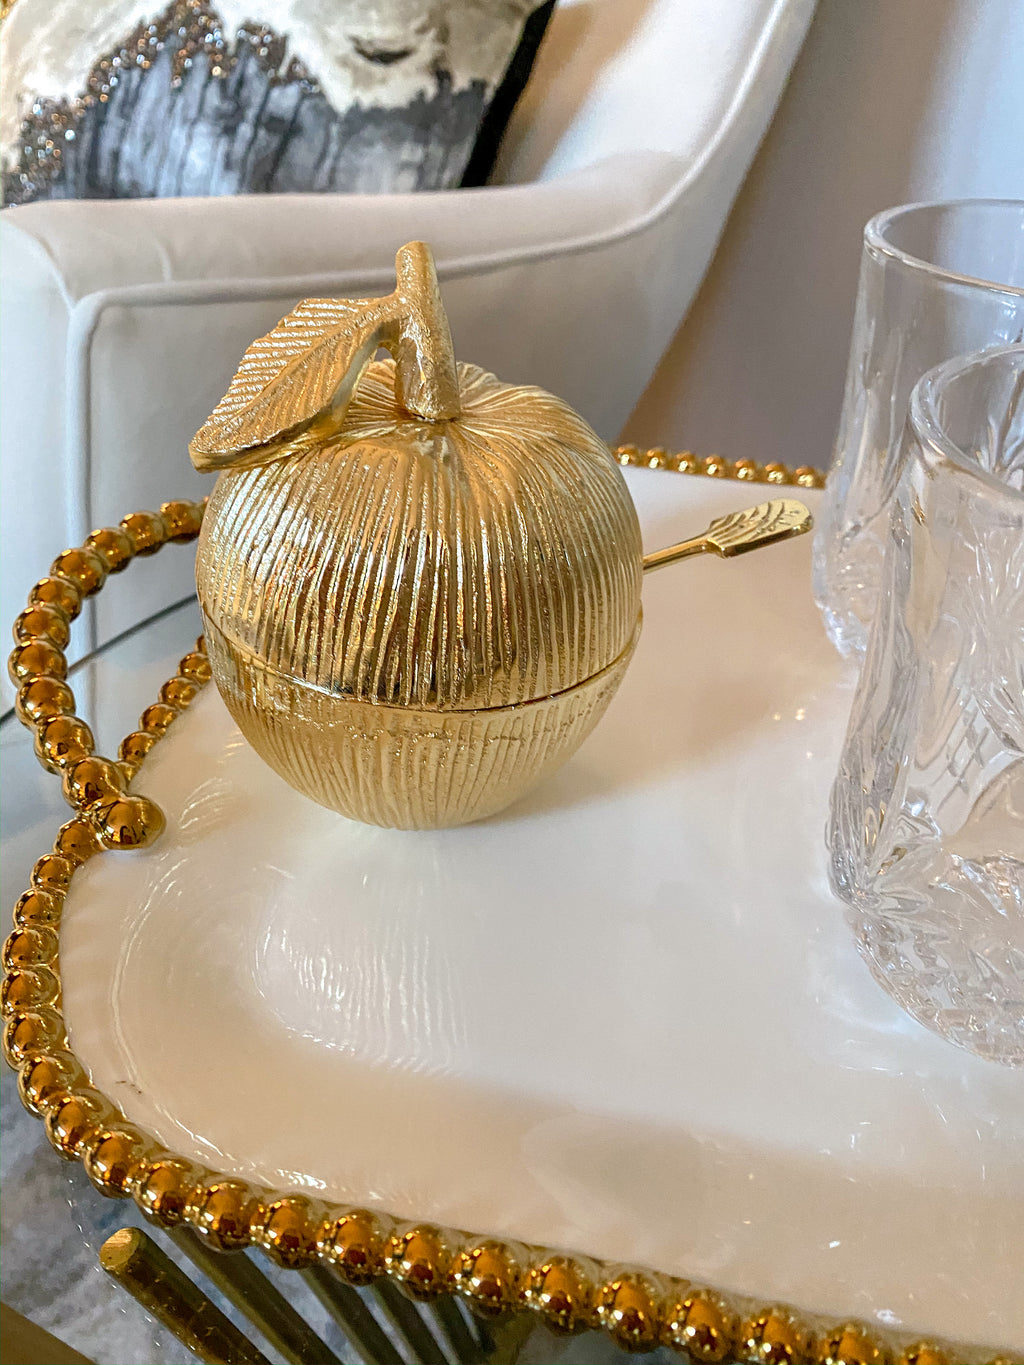 Gold Apple Honey Jar with Spoon